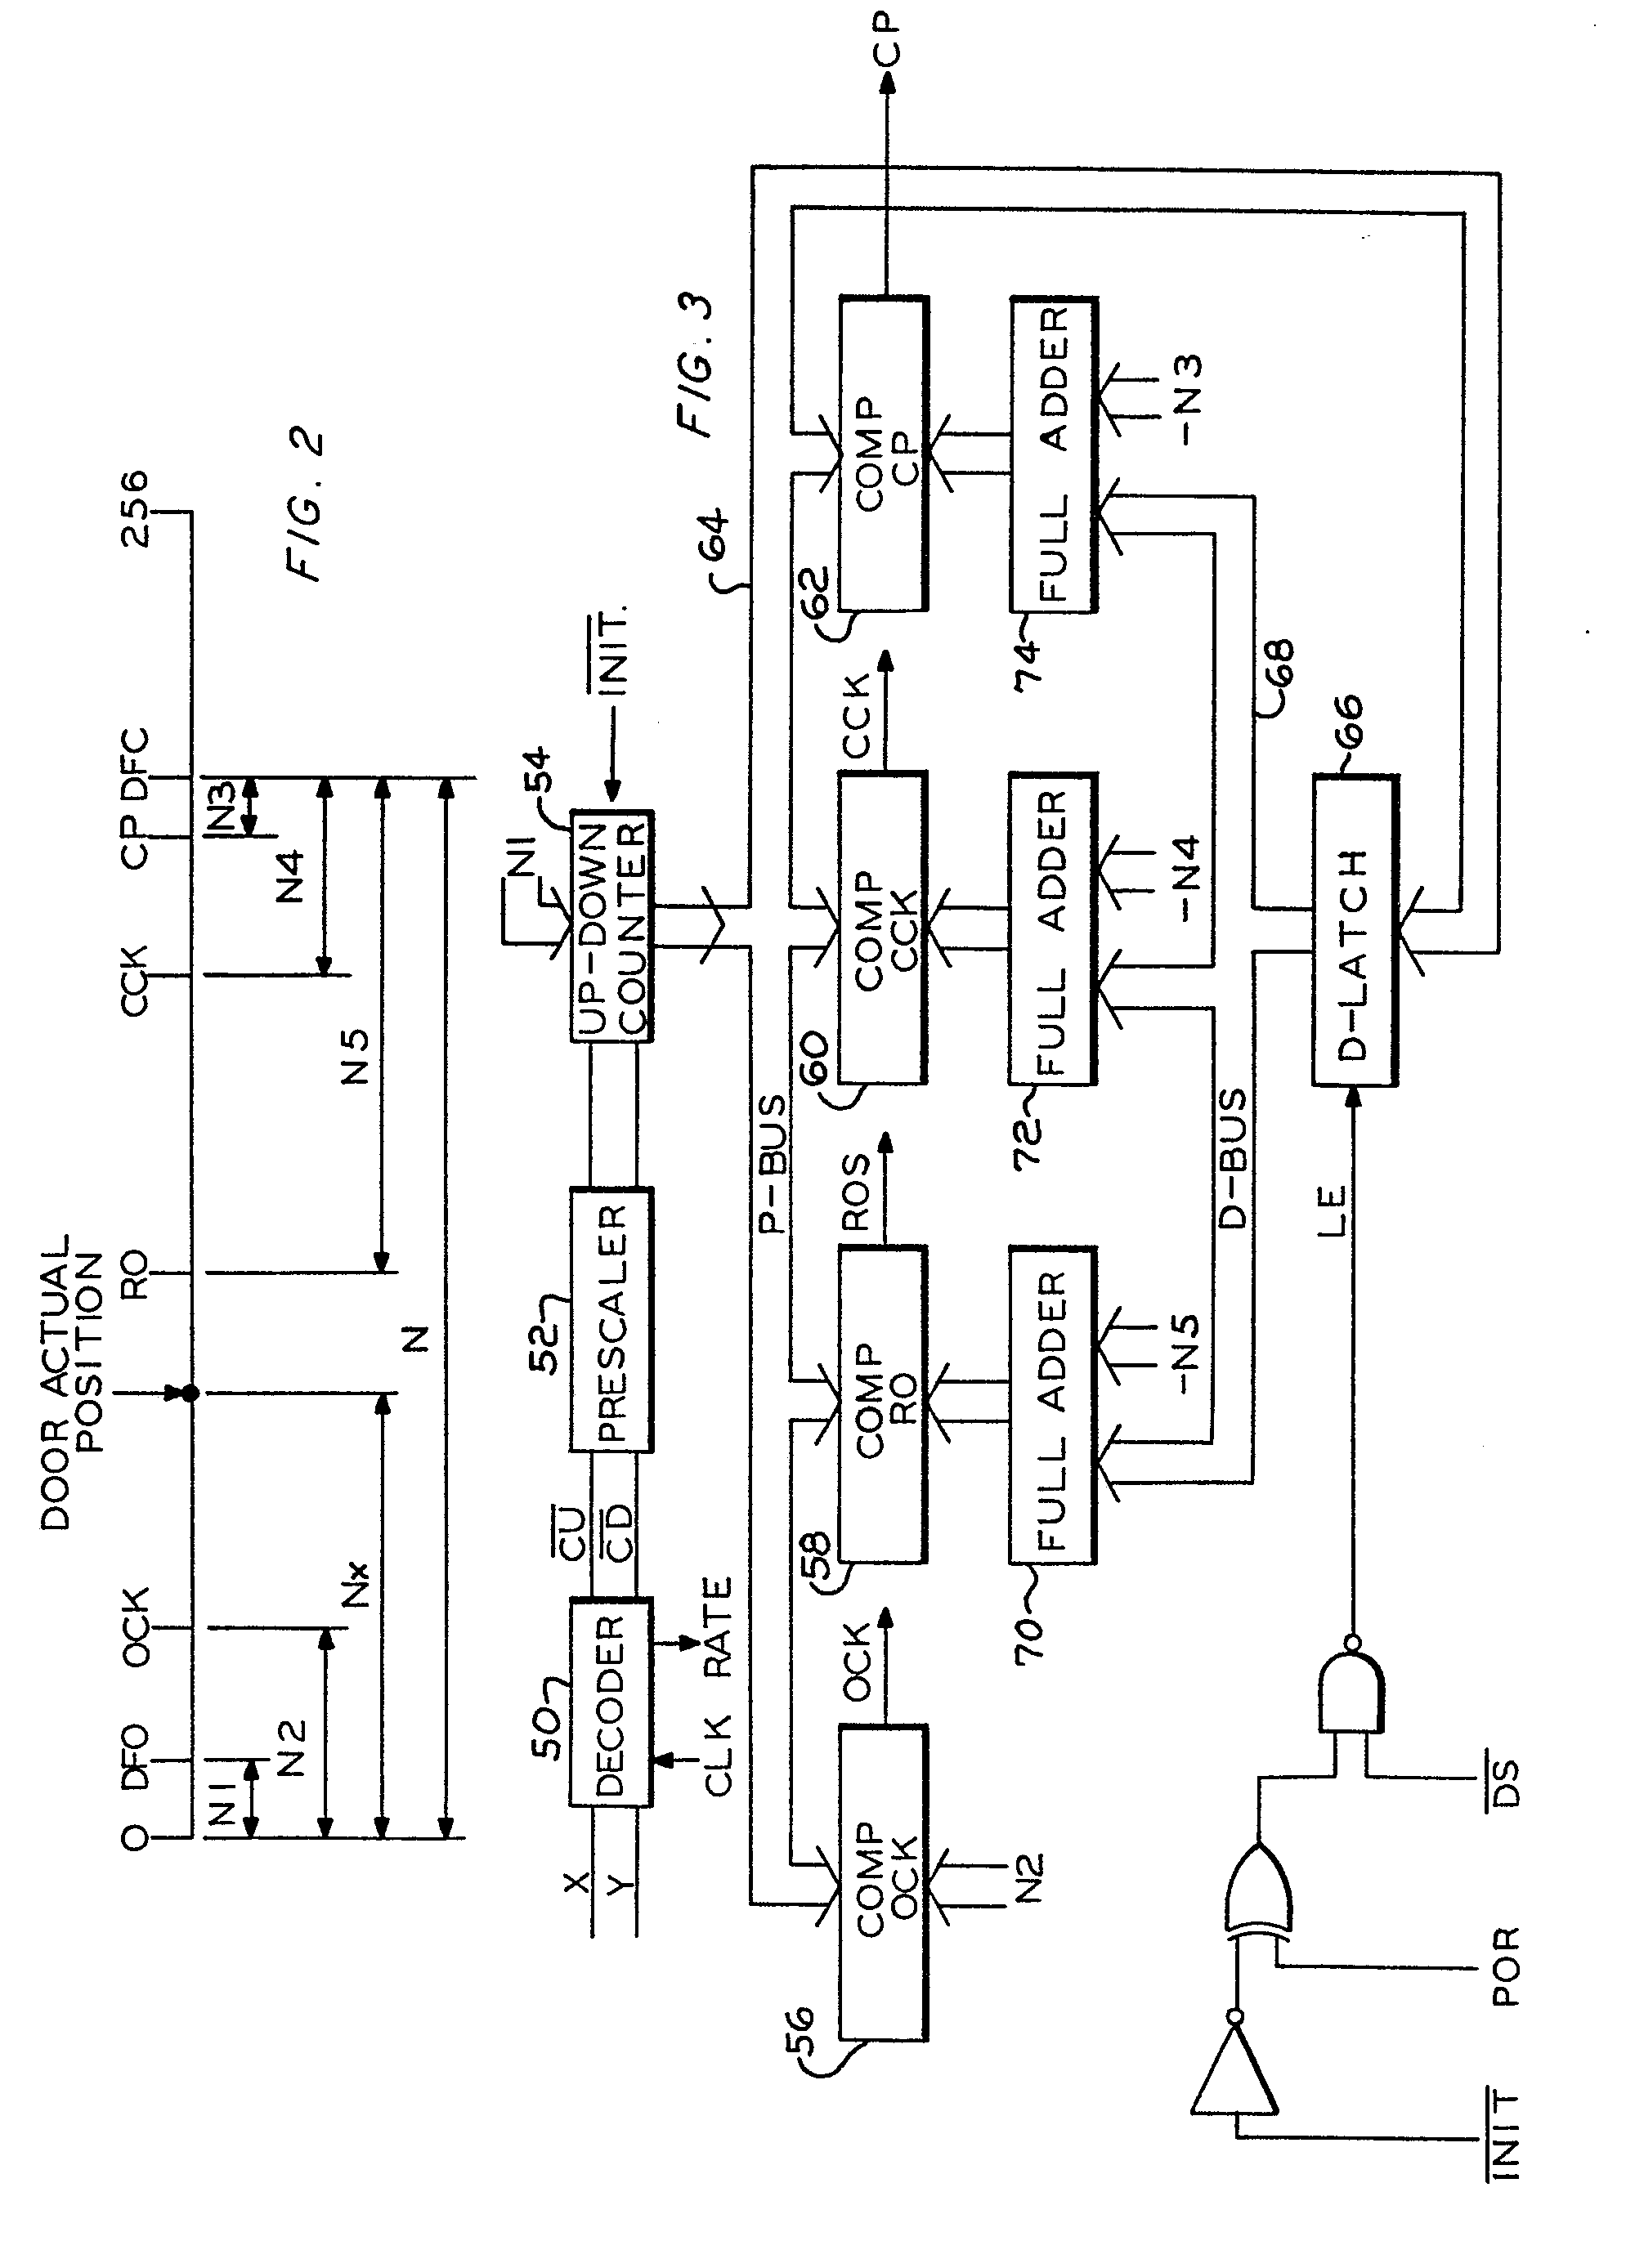 Dynamic Braking Control Circuit Search For Wiring Diagrams Resistor Diagram Patent Ep0162799a1 Automatic Door System Vfd